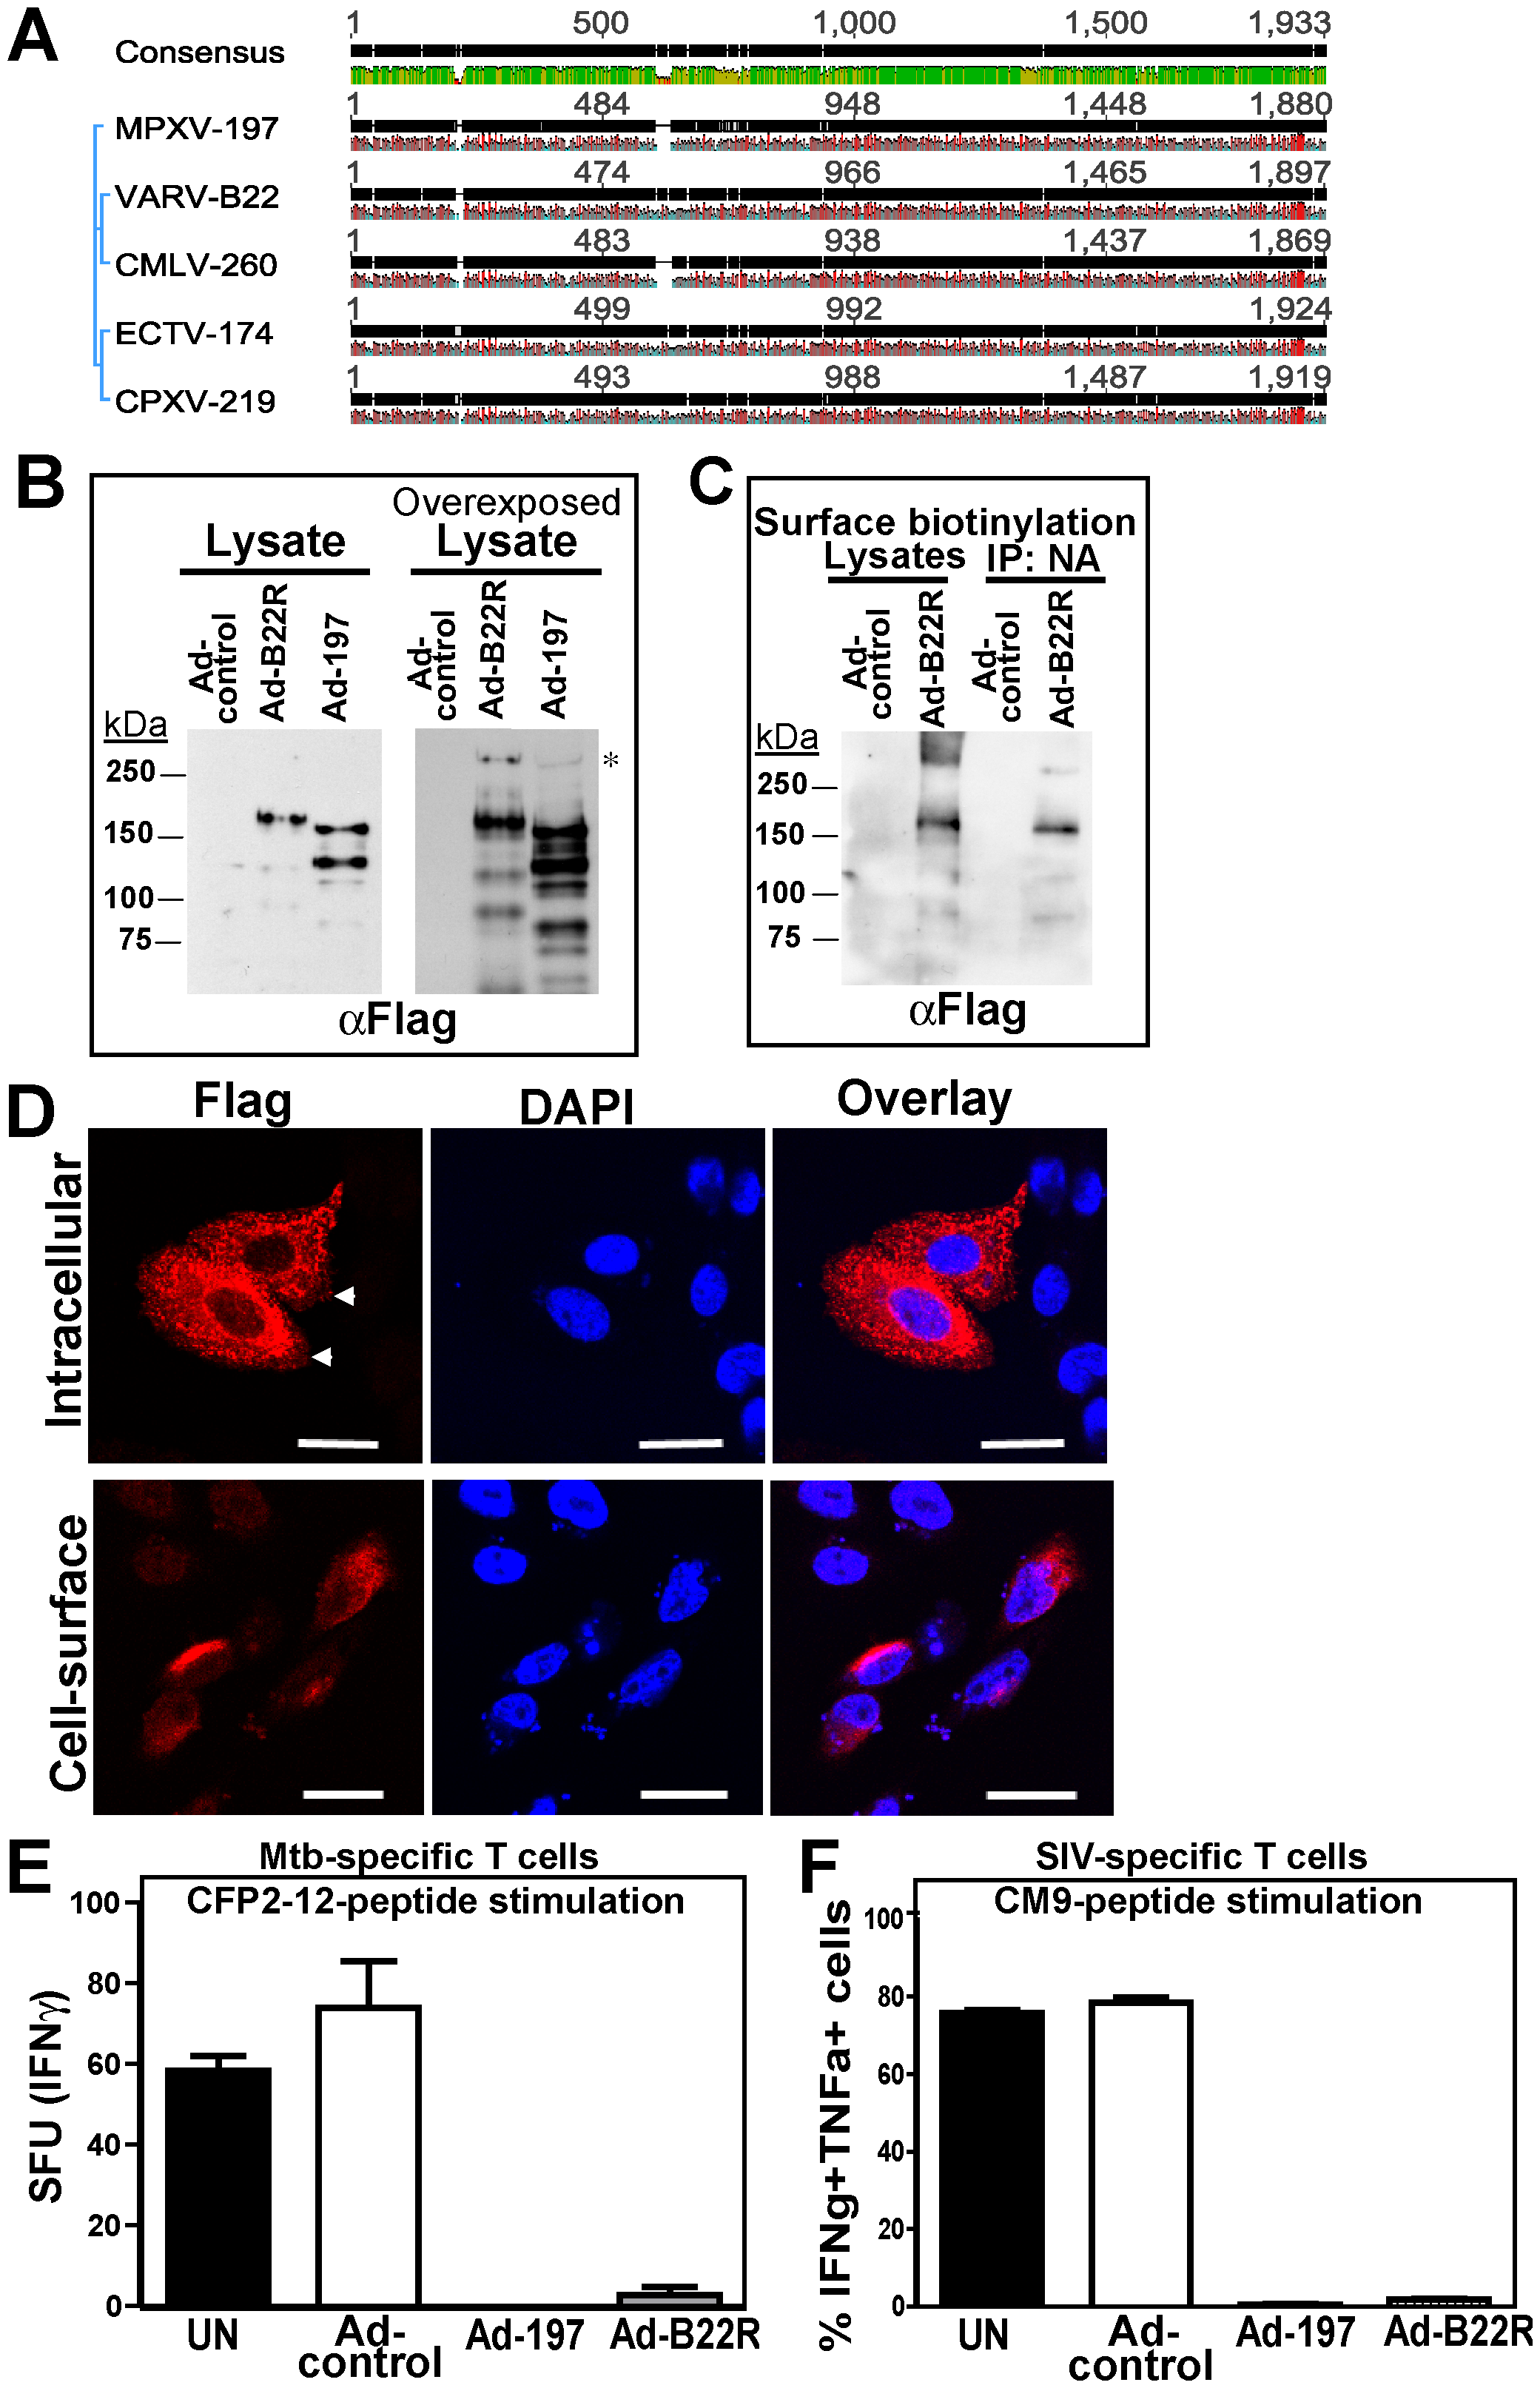 Inhibition of T cell activation by VARV B22.